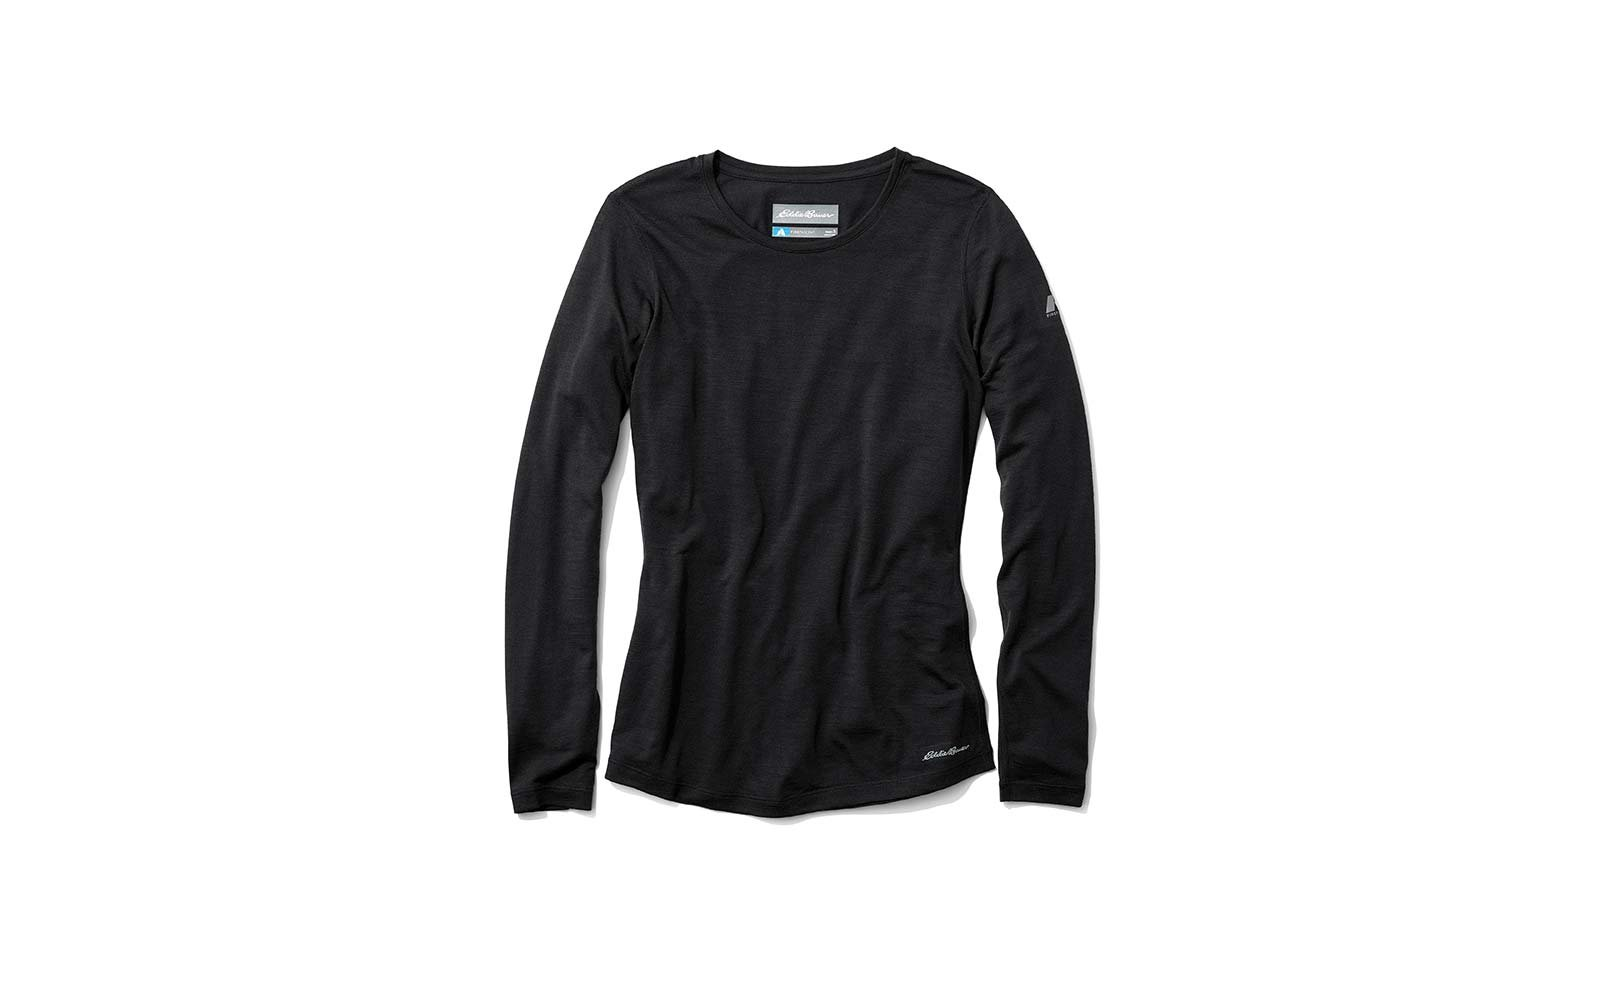 eddie bauer lighweight freedry long sleeve crew